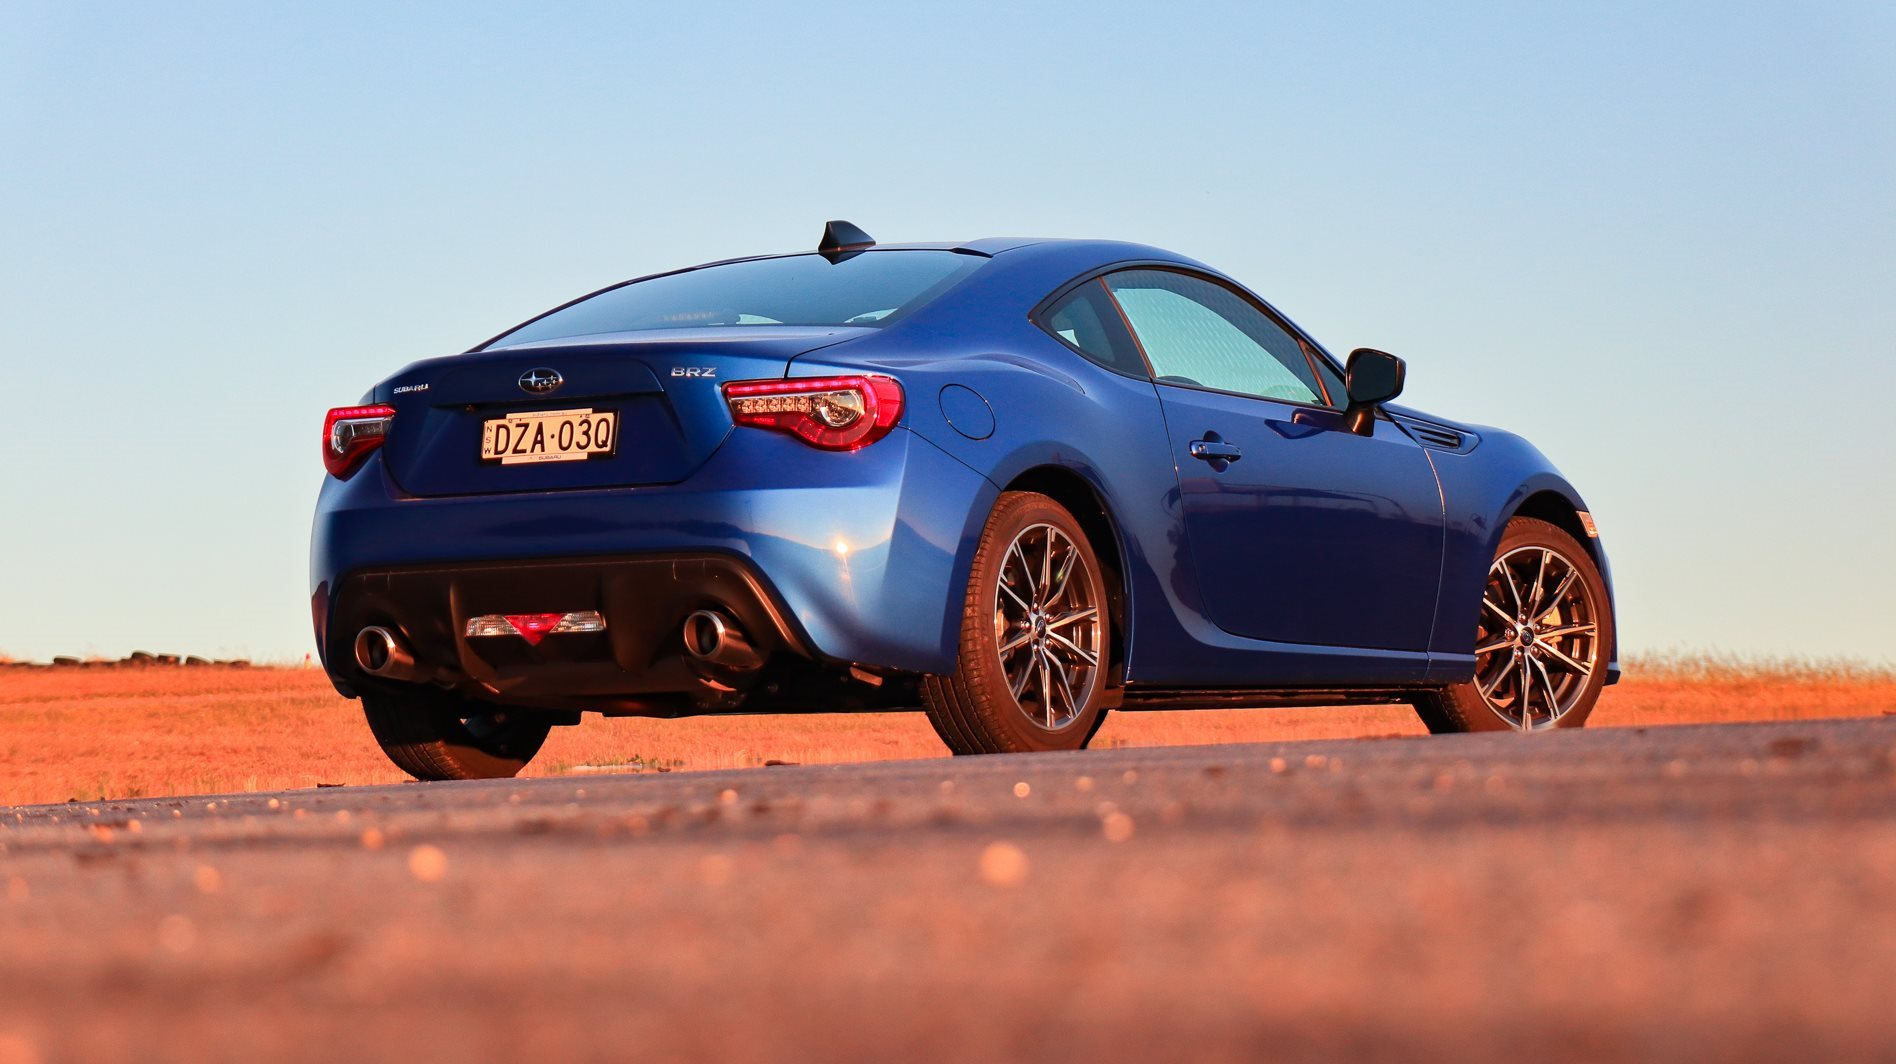 Subaru Brz Production To Wind Up With No Replacement Confirmed